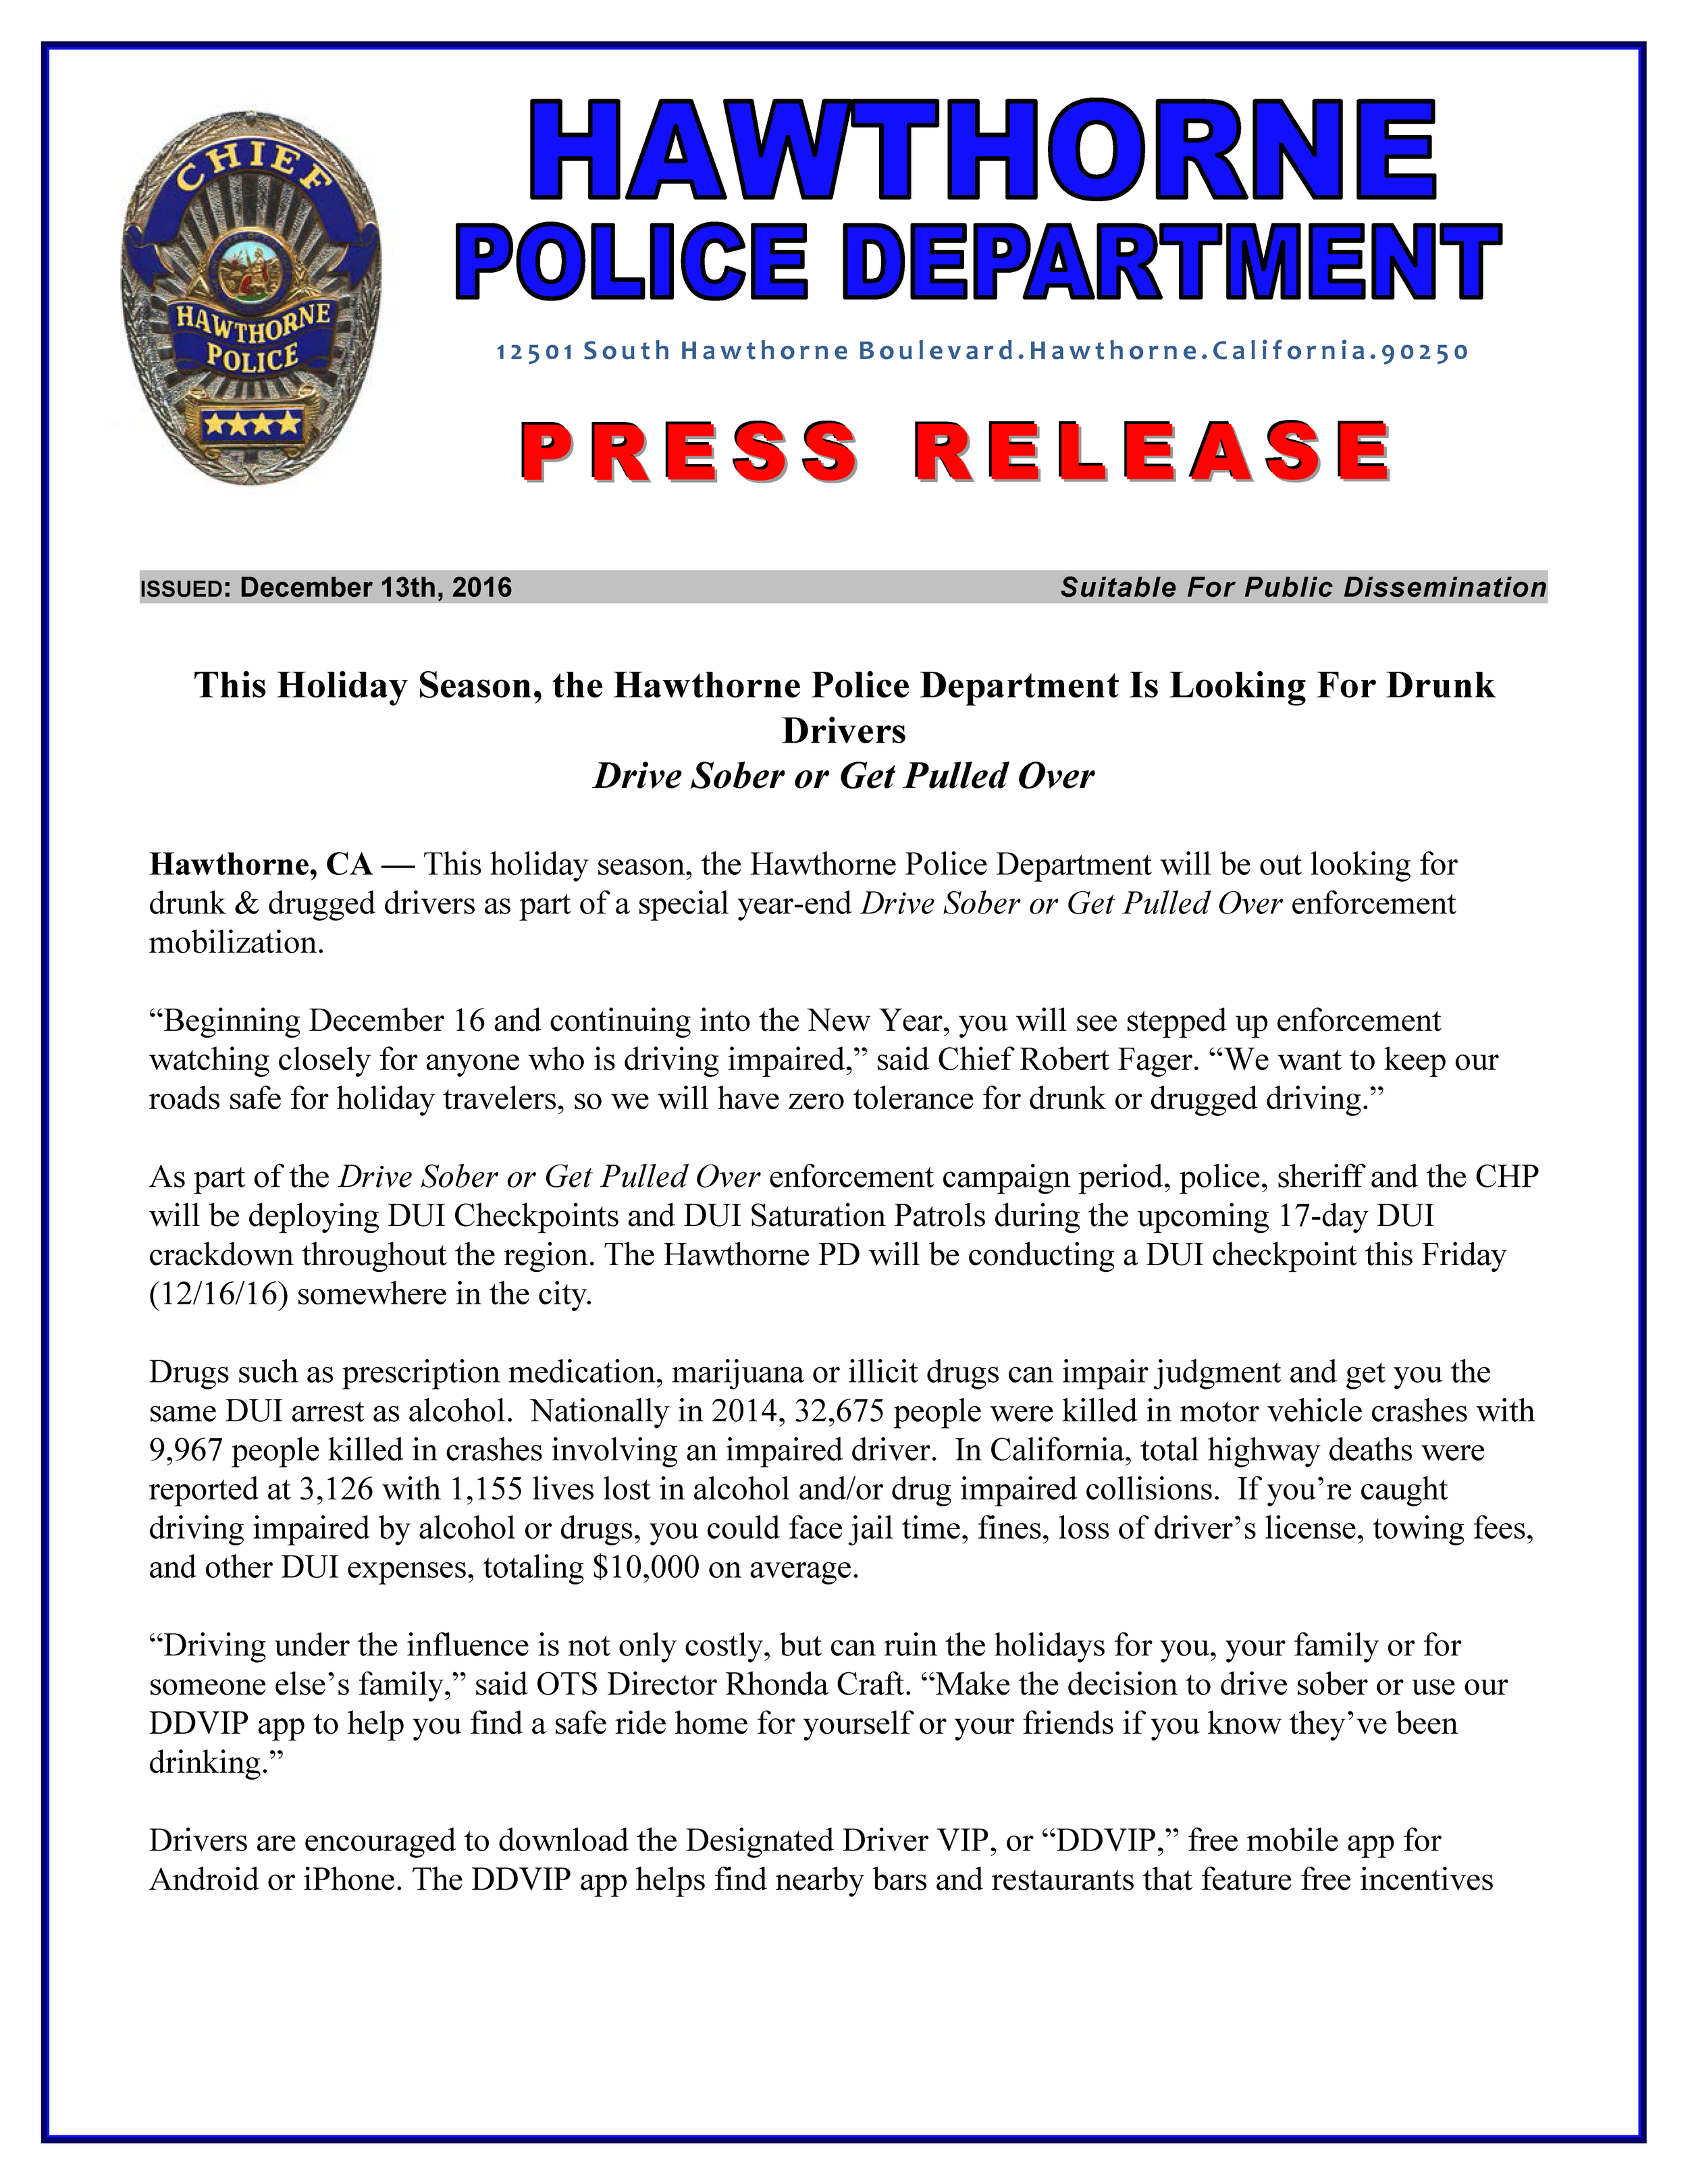 12 13 16 dui checkpoint press release_Page_1.png